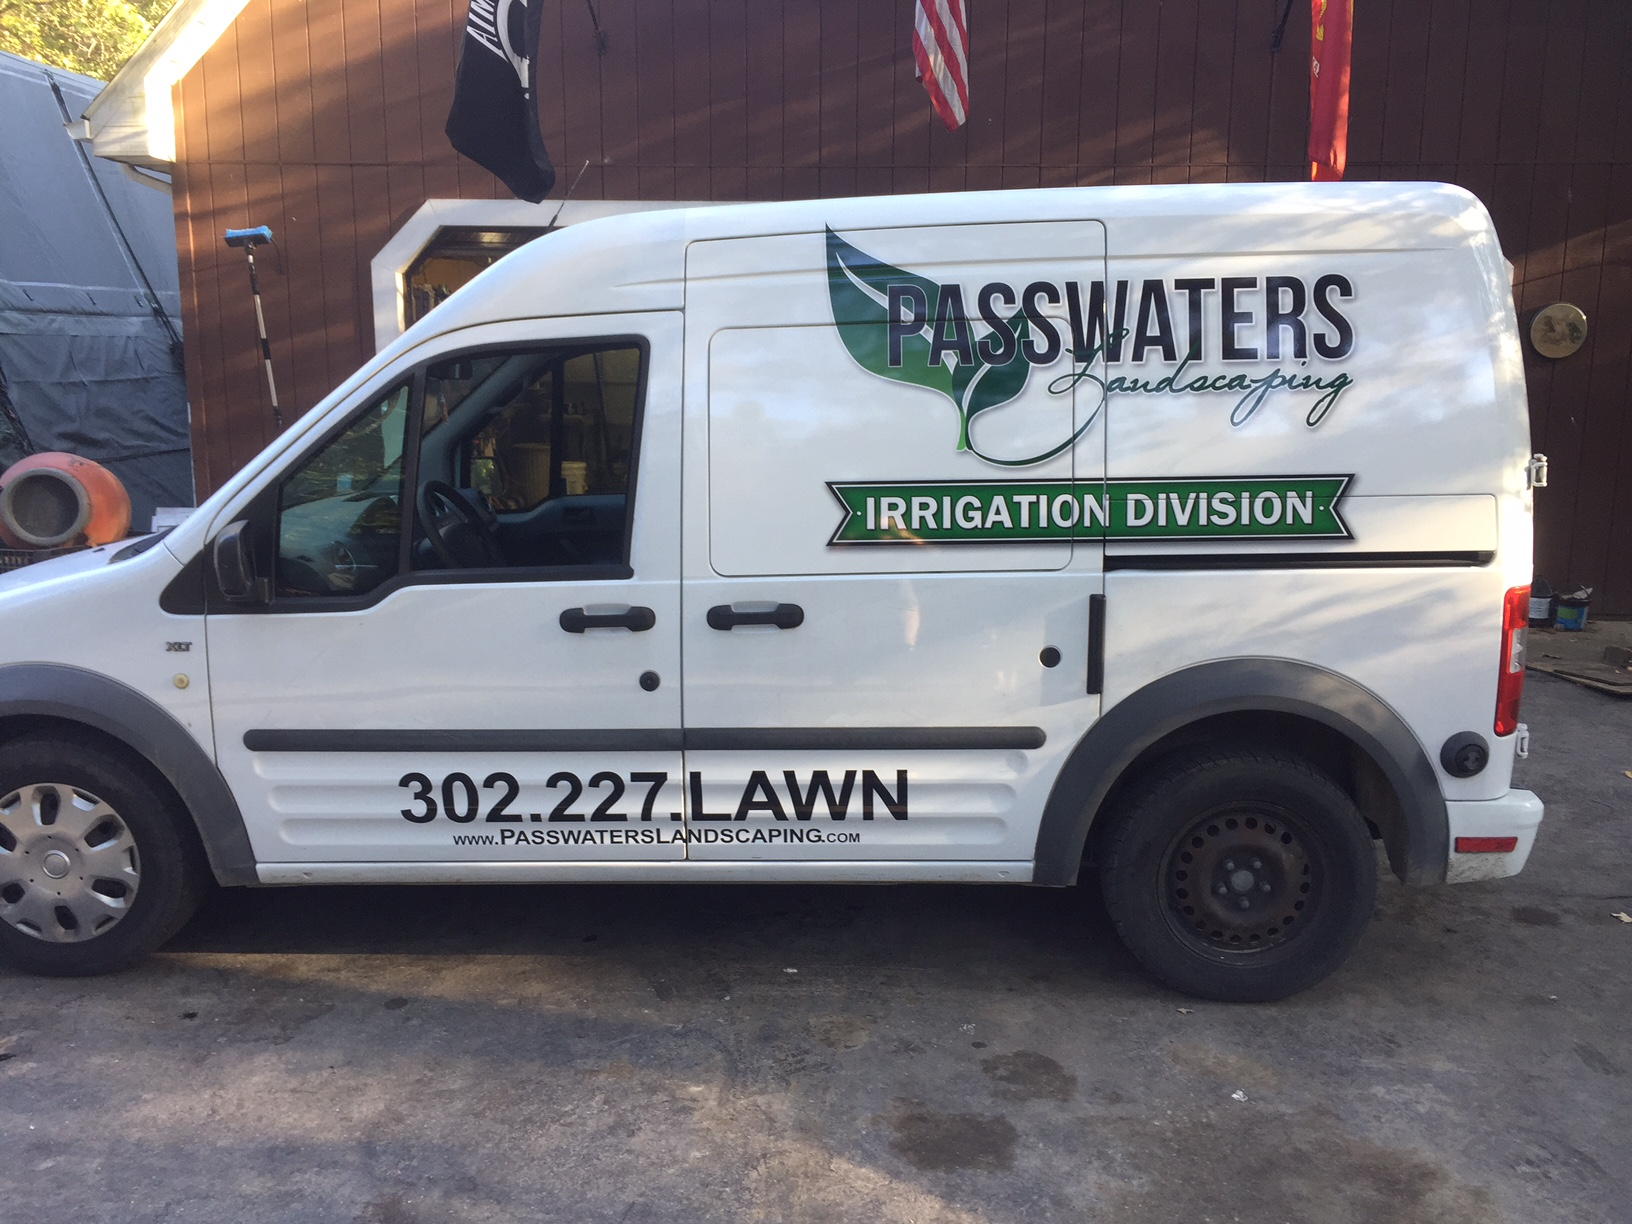 Passwaters Landscaping